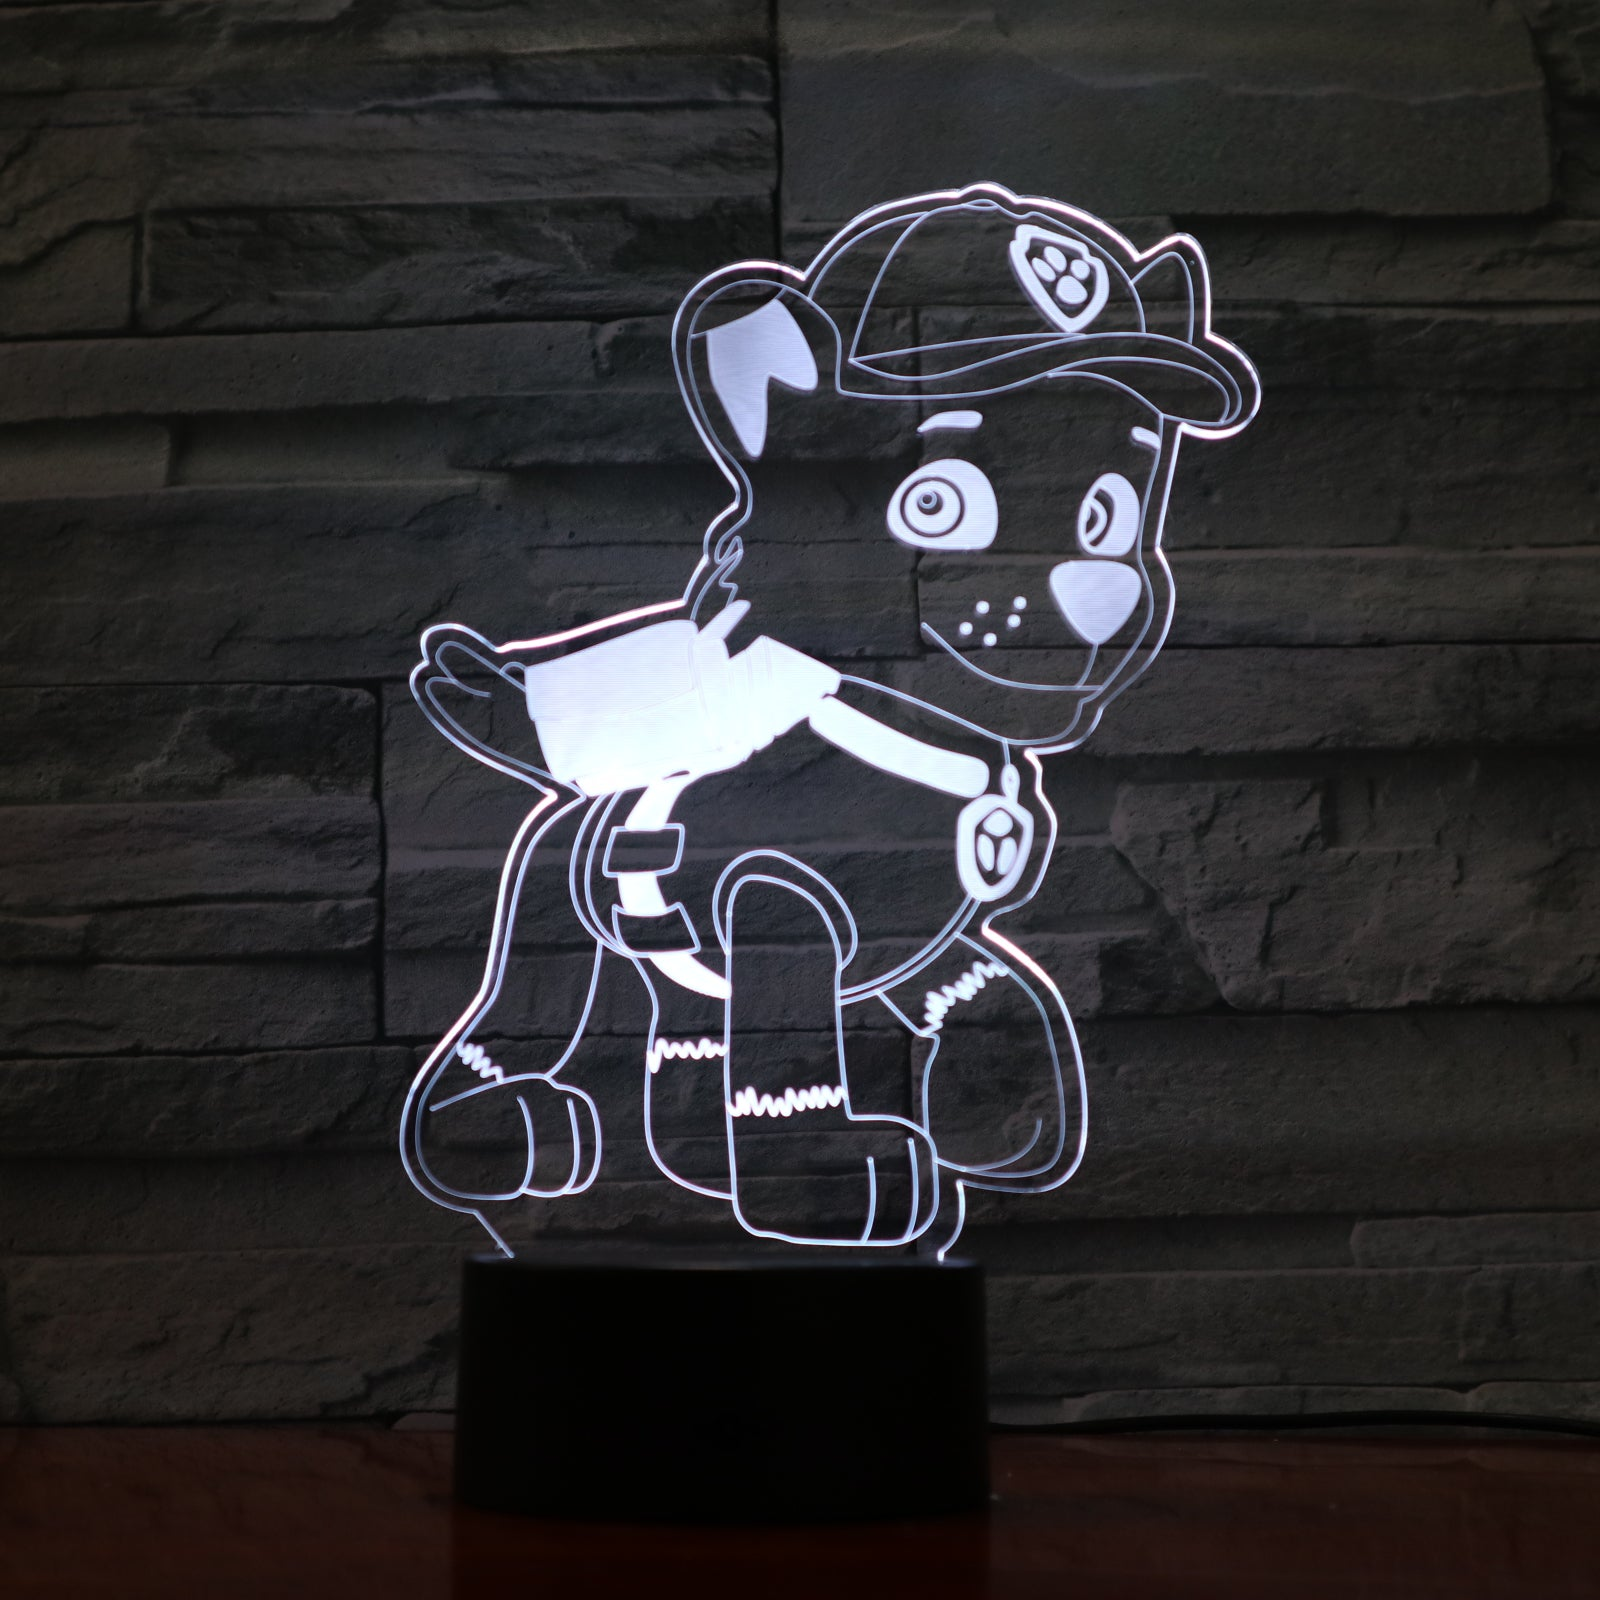 Dog 4 - 3D Optical Illusion LED Lamp Hologram